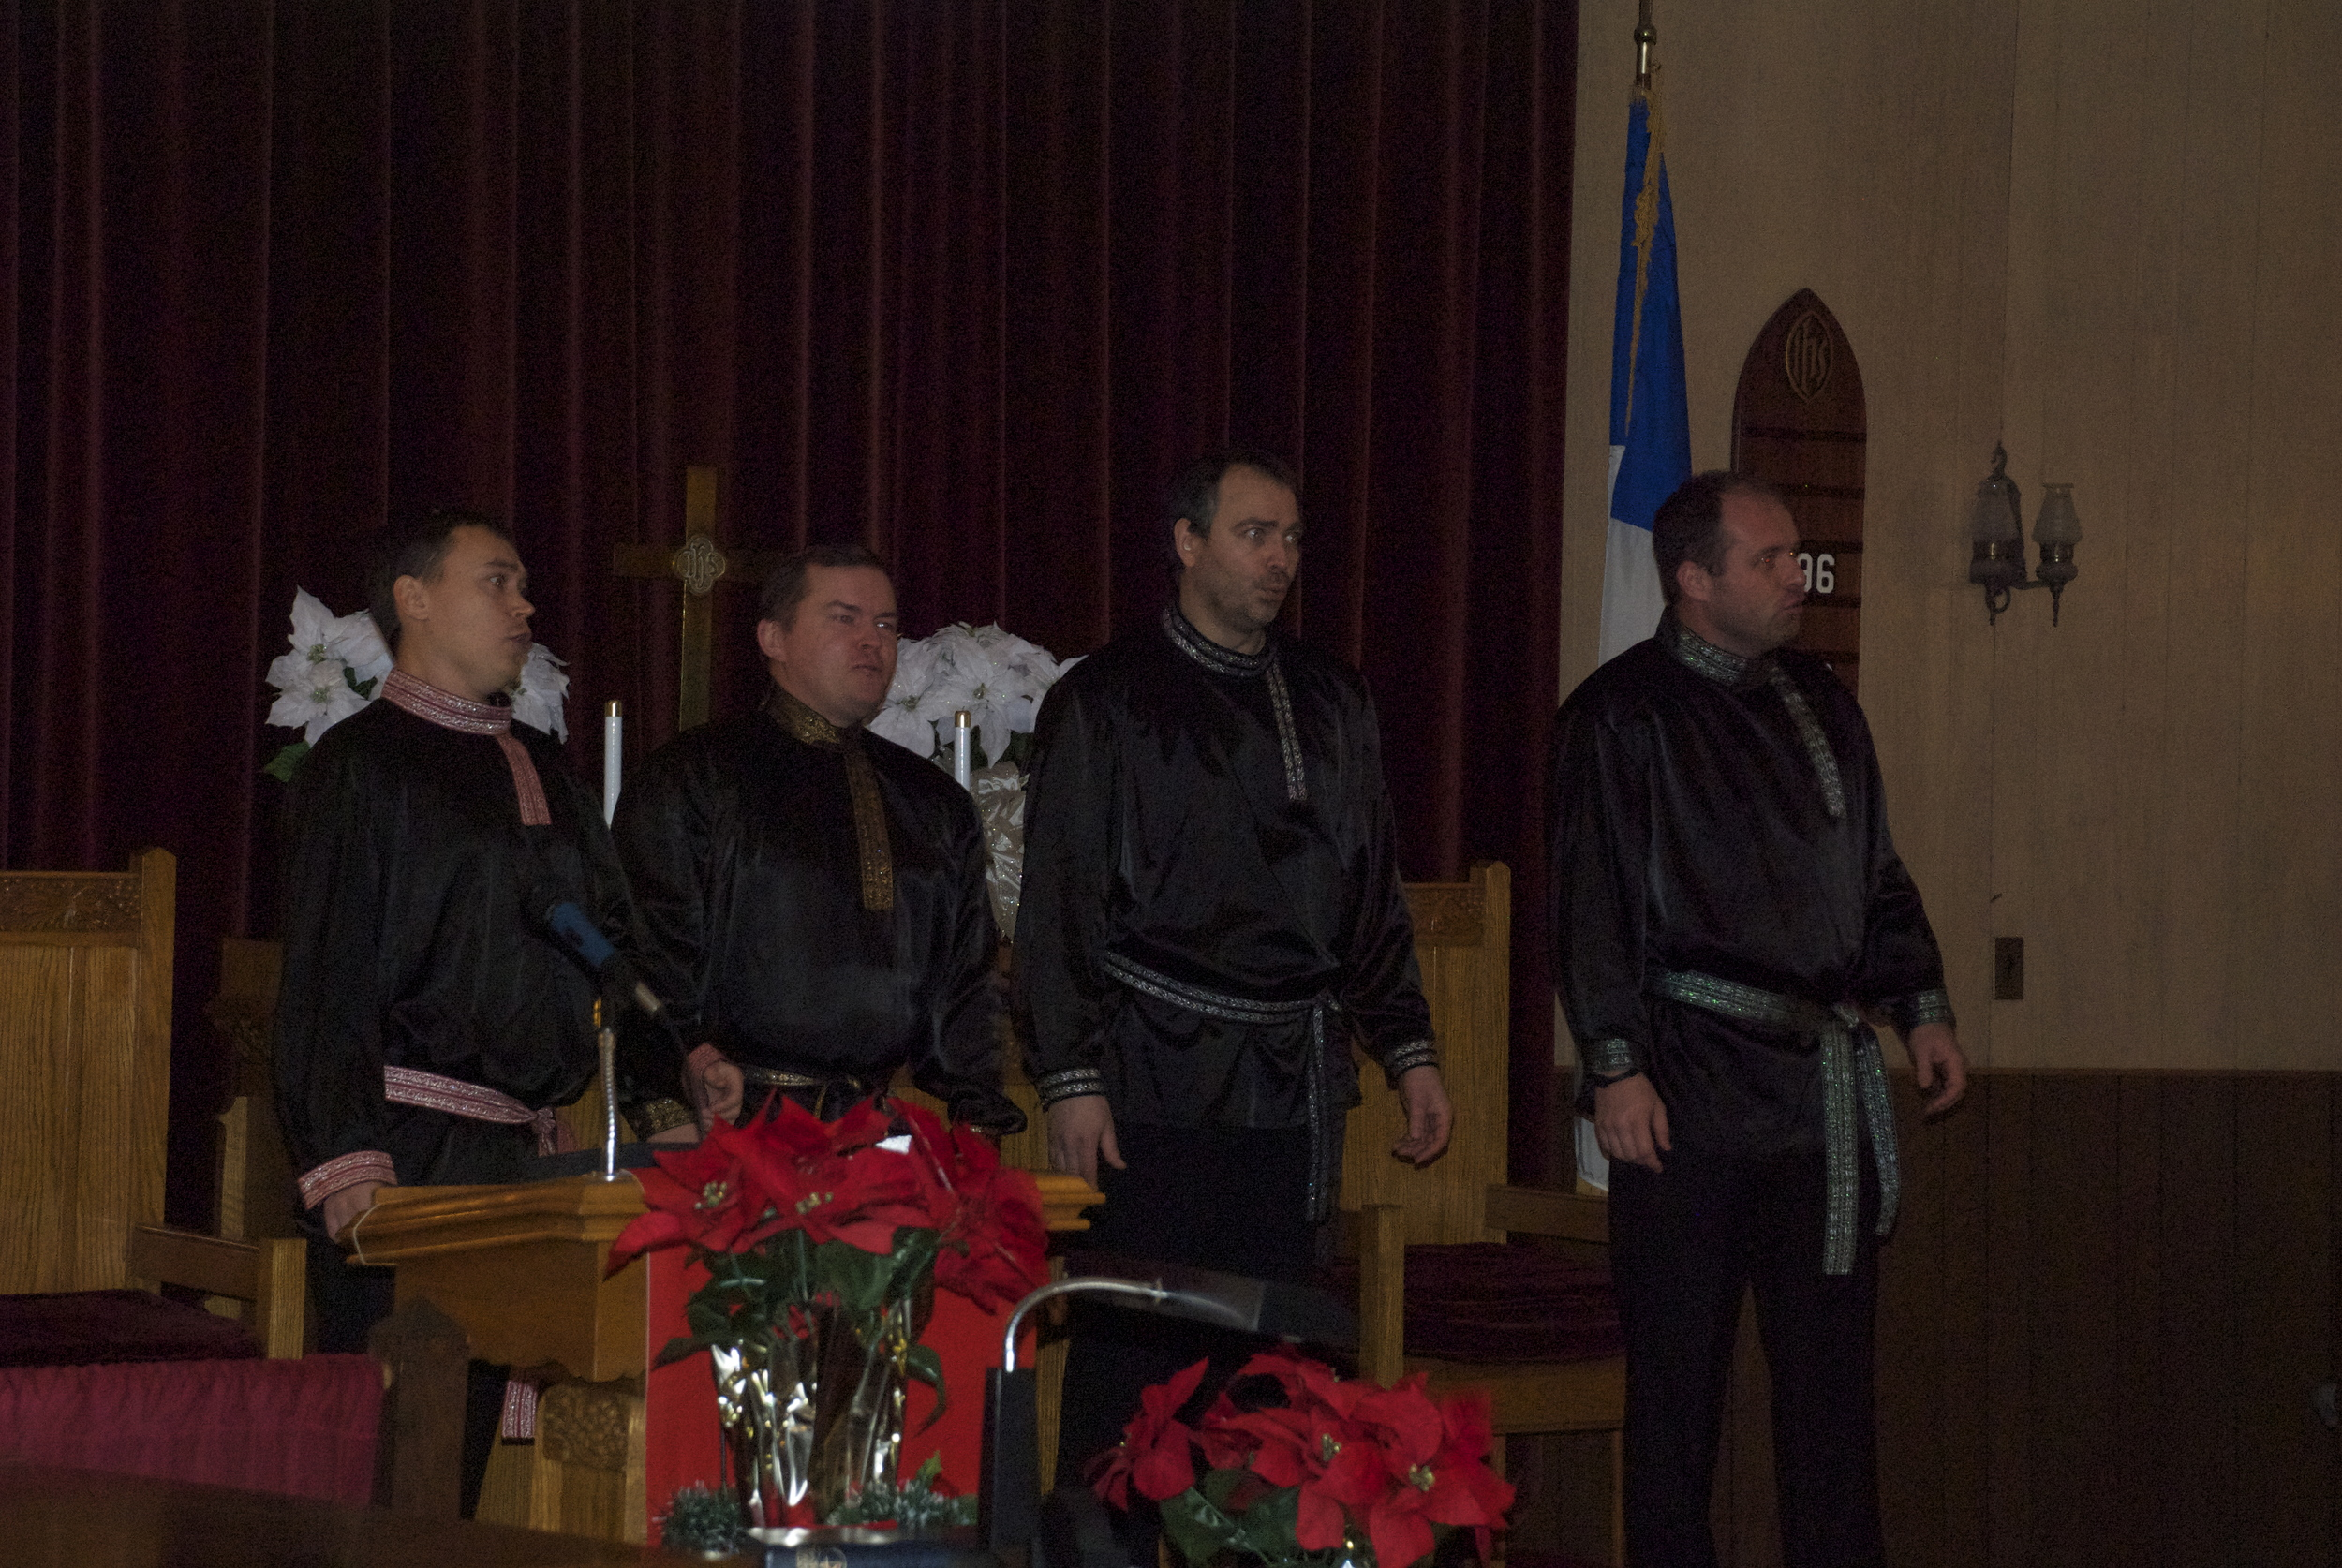 The second half of the concert was completely in Russian with Russian folk songs.